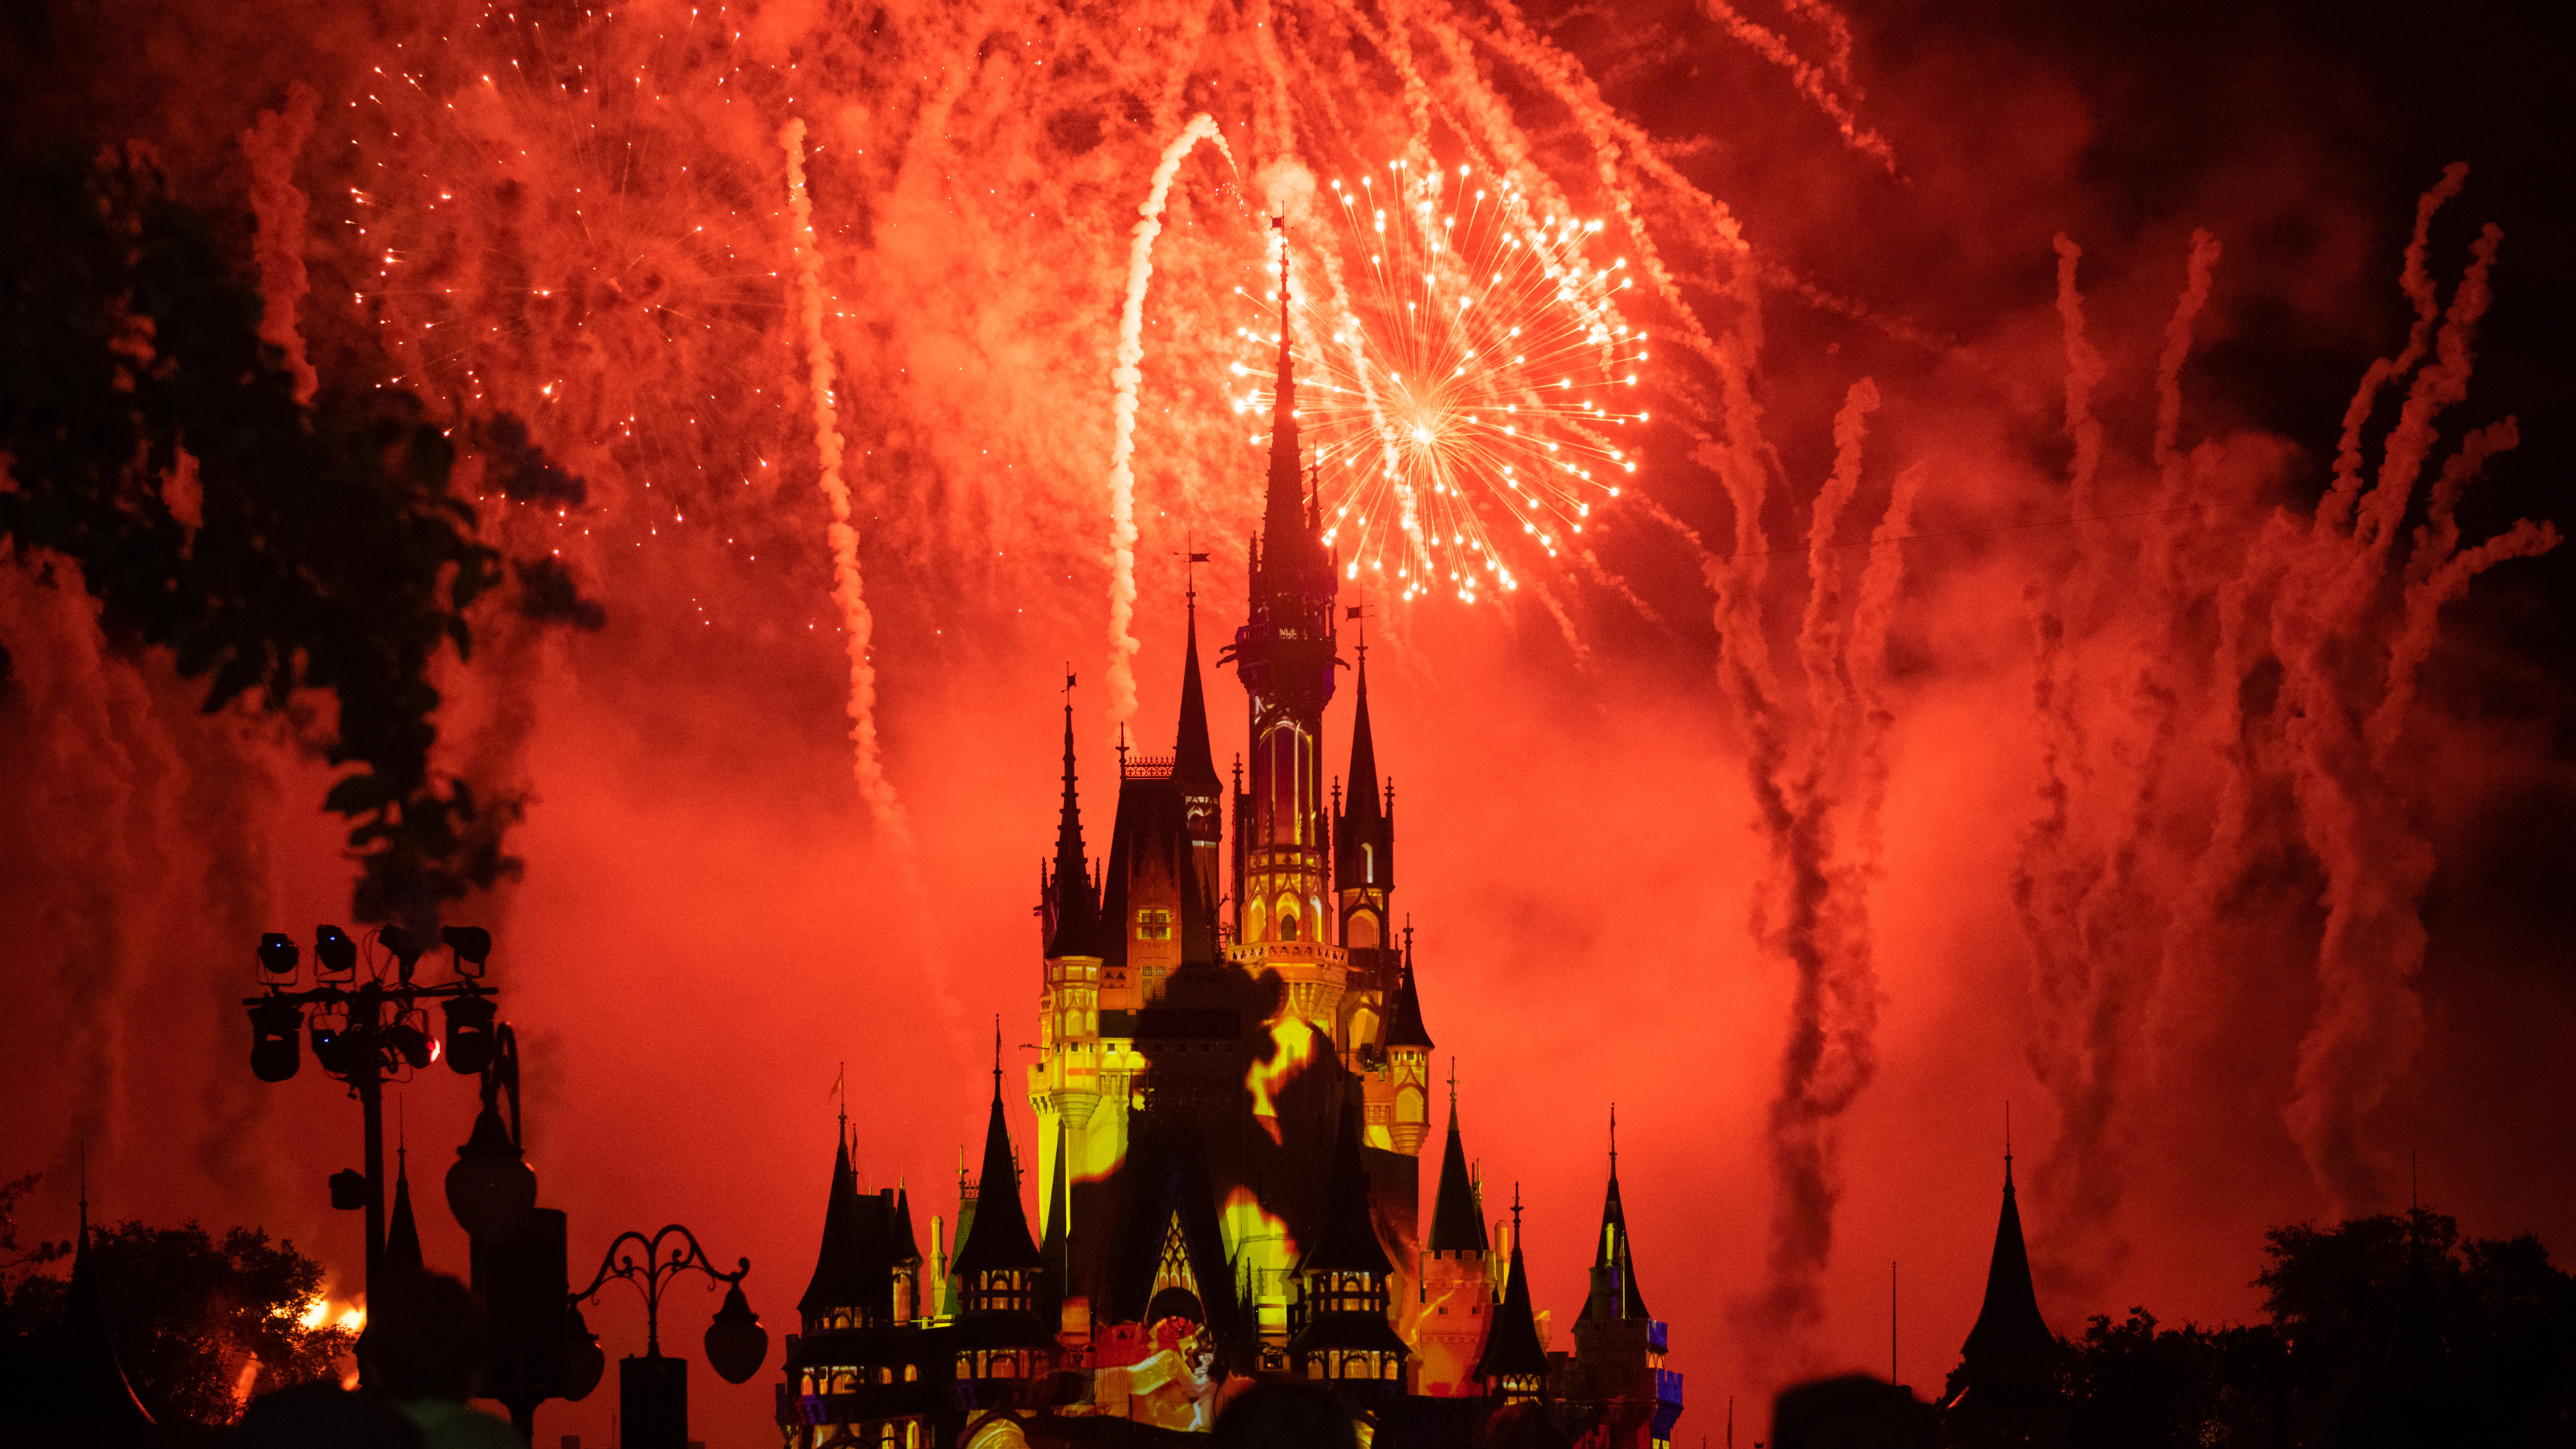 Red fireworks and yellow strobe lights illuminating the Cinderella Castle in the Walt Disney's Magic Kingdom themed park.